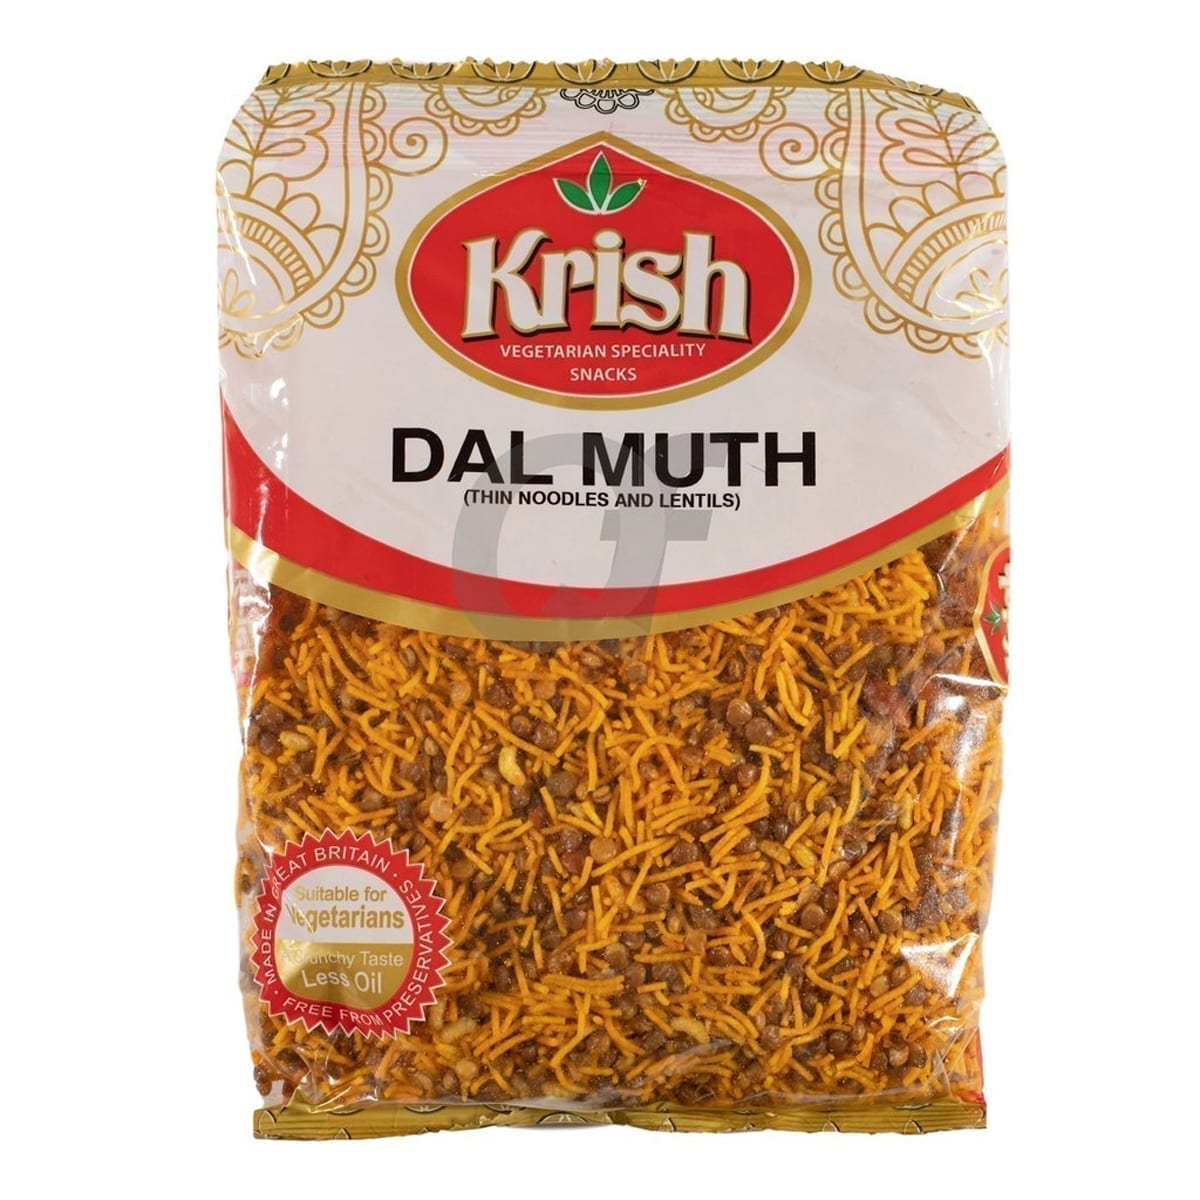 Dal Muth MixThin Noodles And Lentils 275G Krish